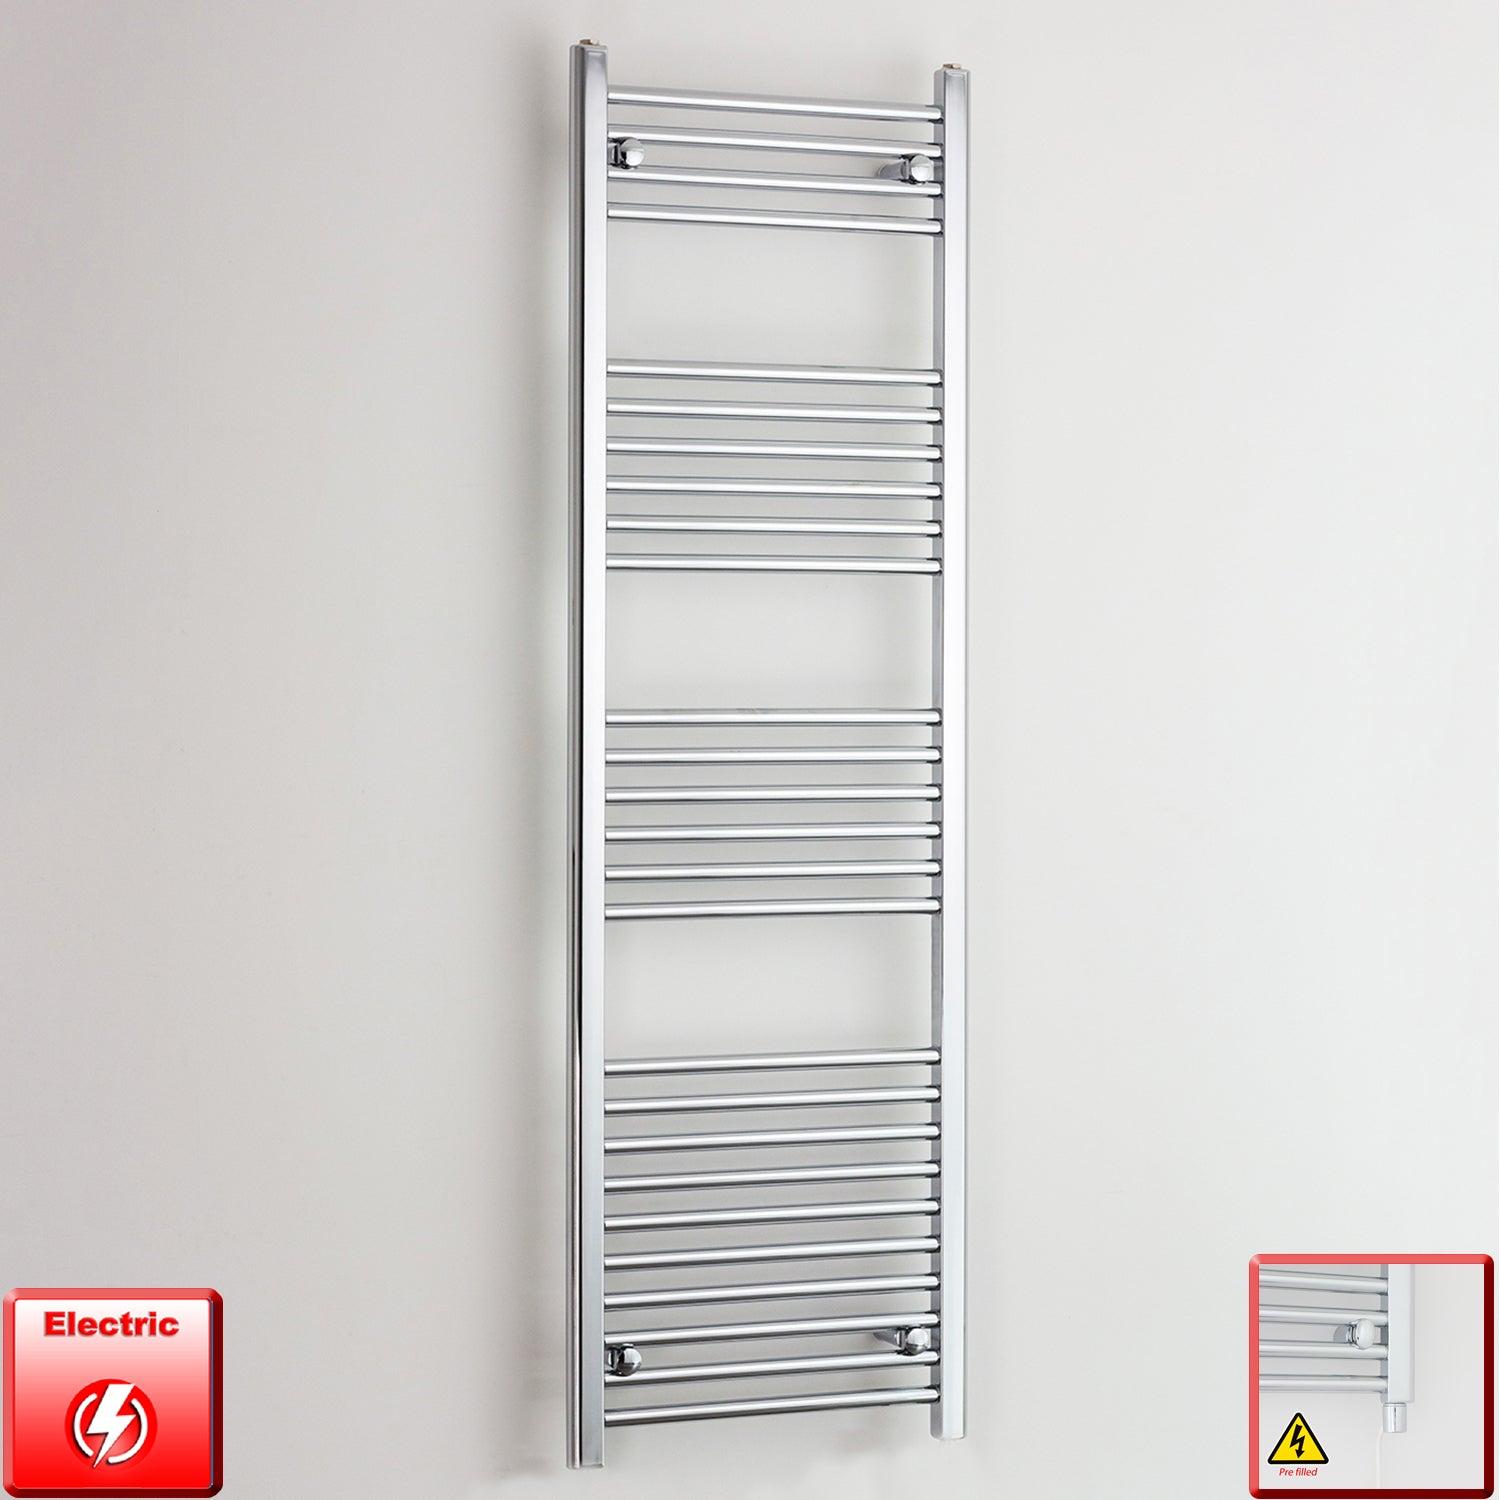 1600mm High 400mm Wide Pre-Filled Electric Heated Towel Rail Radiator Straight Chrome